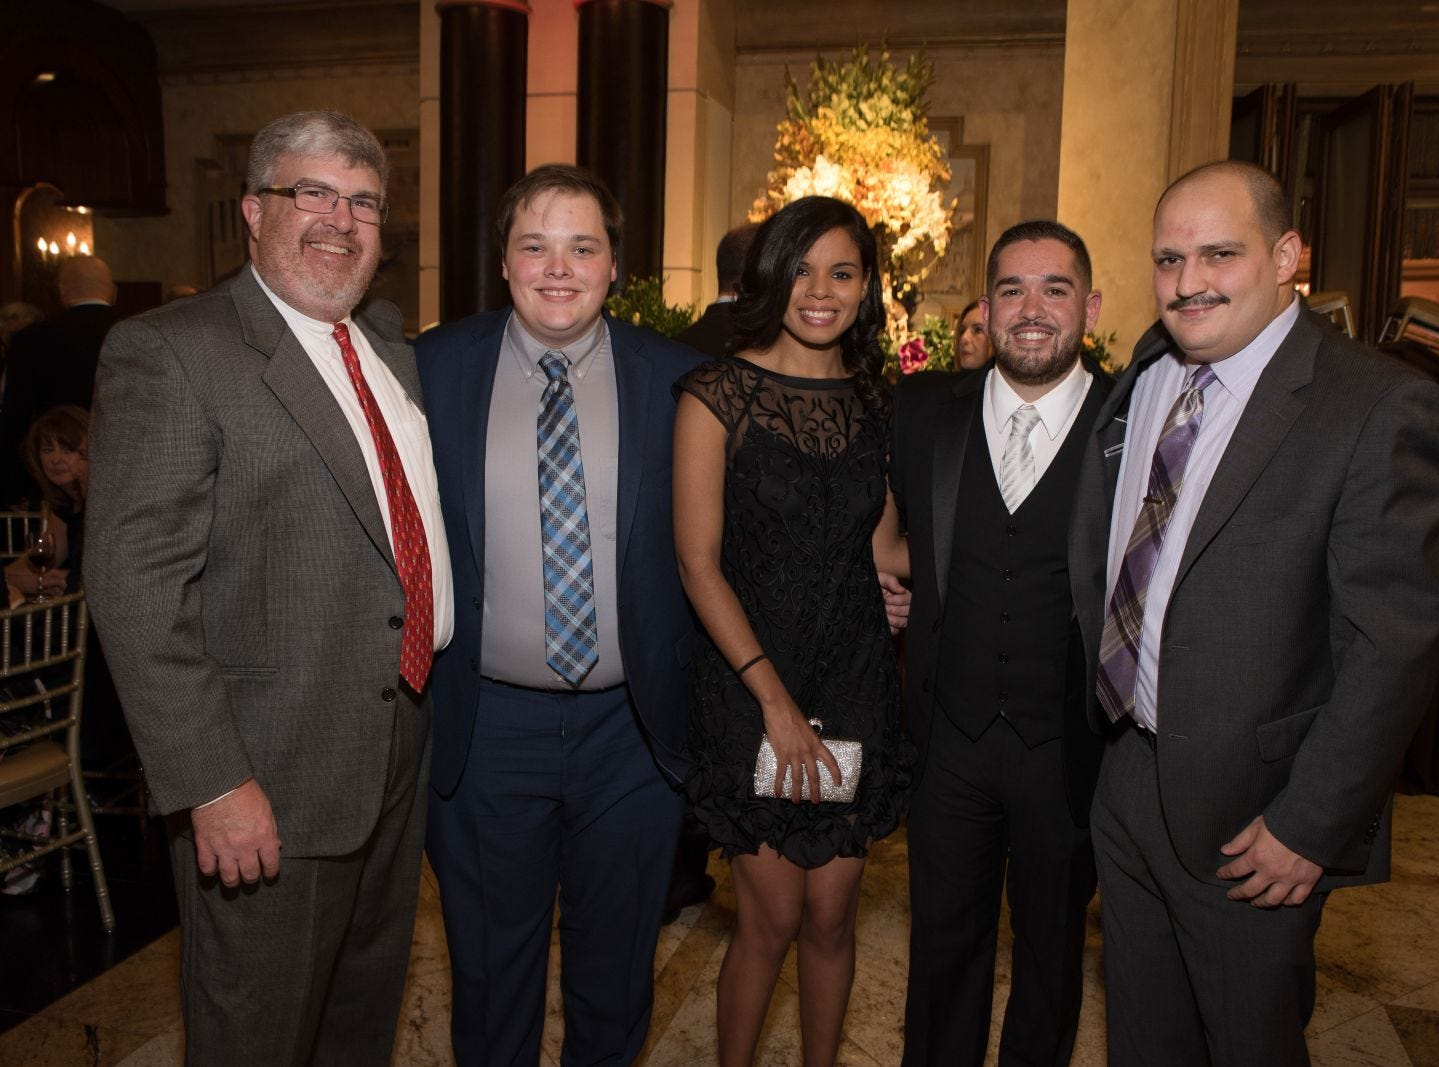 Bergen Catholic High School celebrates their 2018 Crusader Gala at The Venetian in Garfield. 11/16/2018